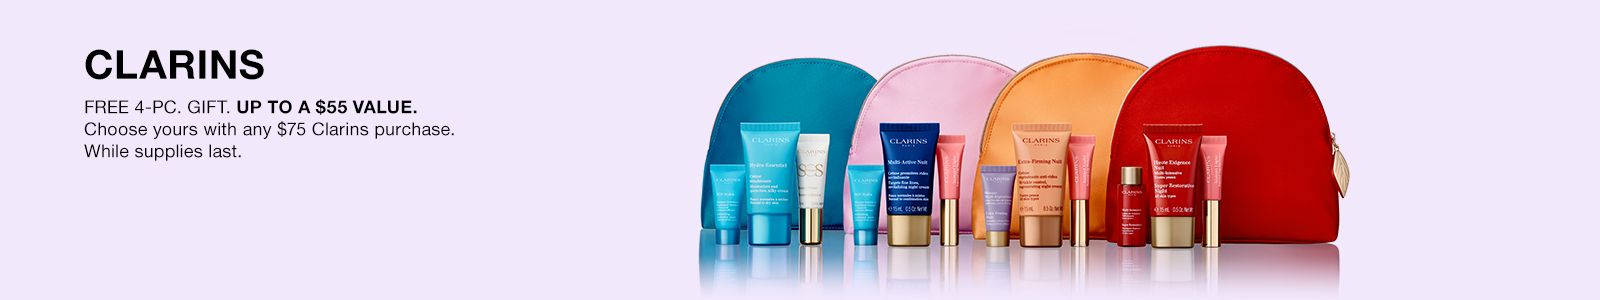 Clarins, Free 4-PC. Gift up to a $55 Value, Choose yours with any $75 Clarins purchase, While Supplies last